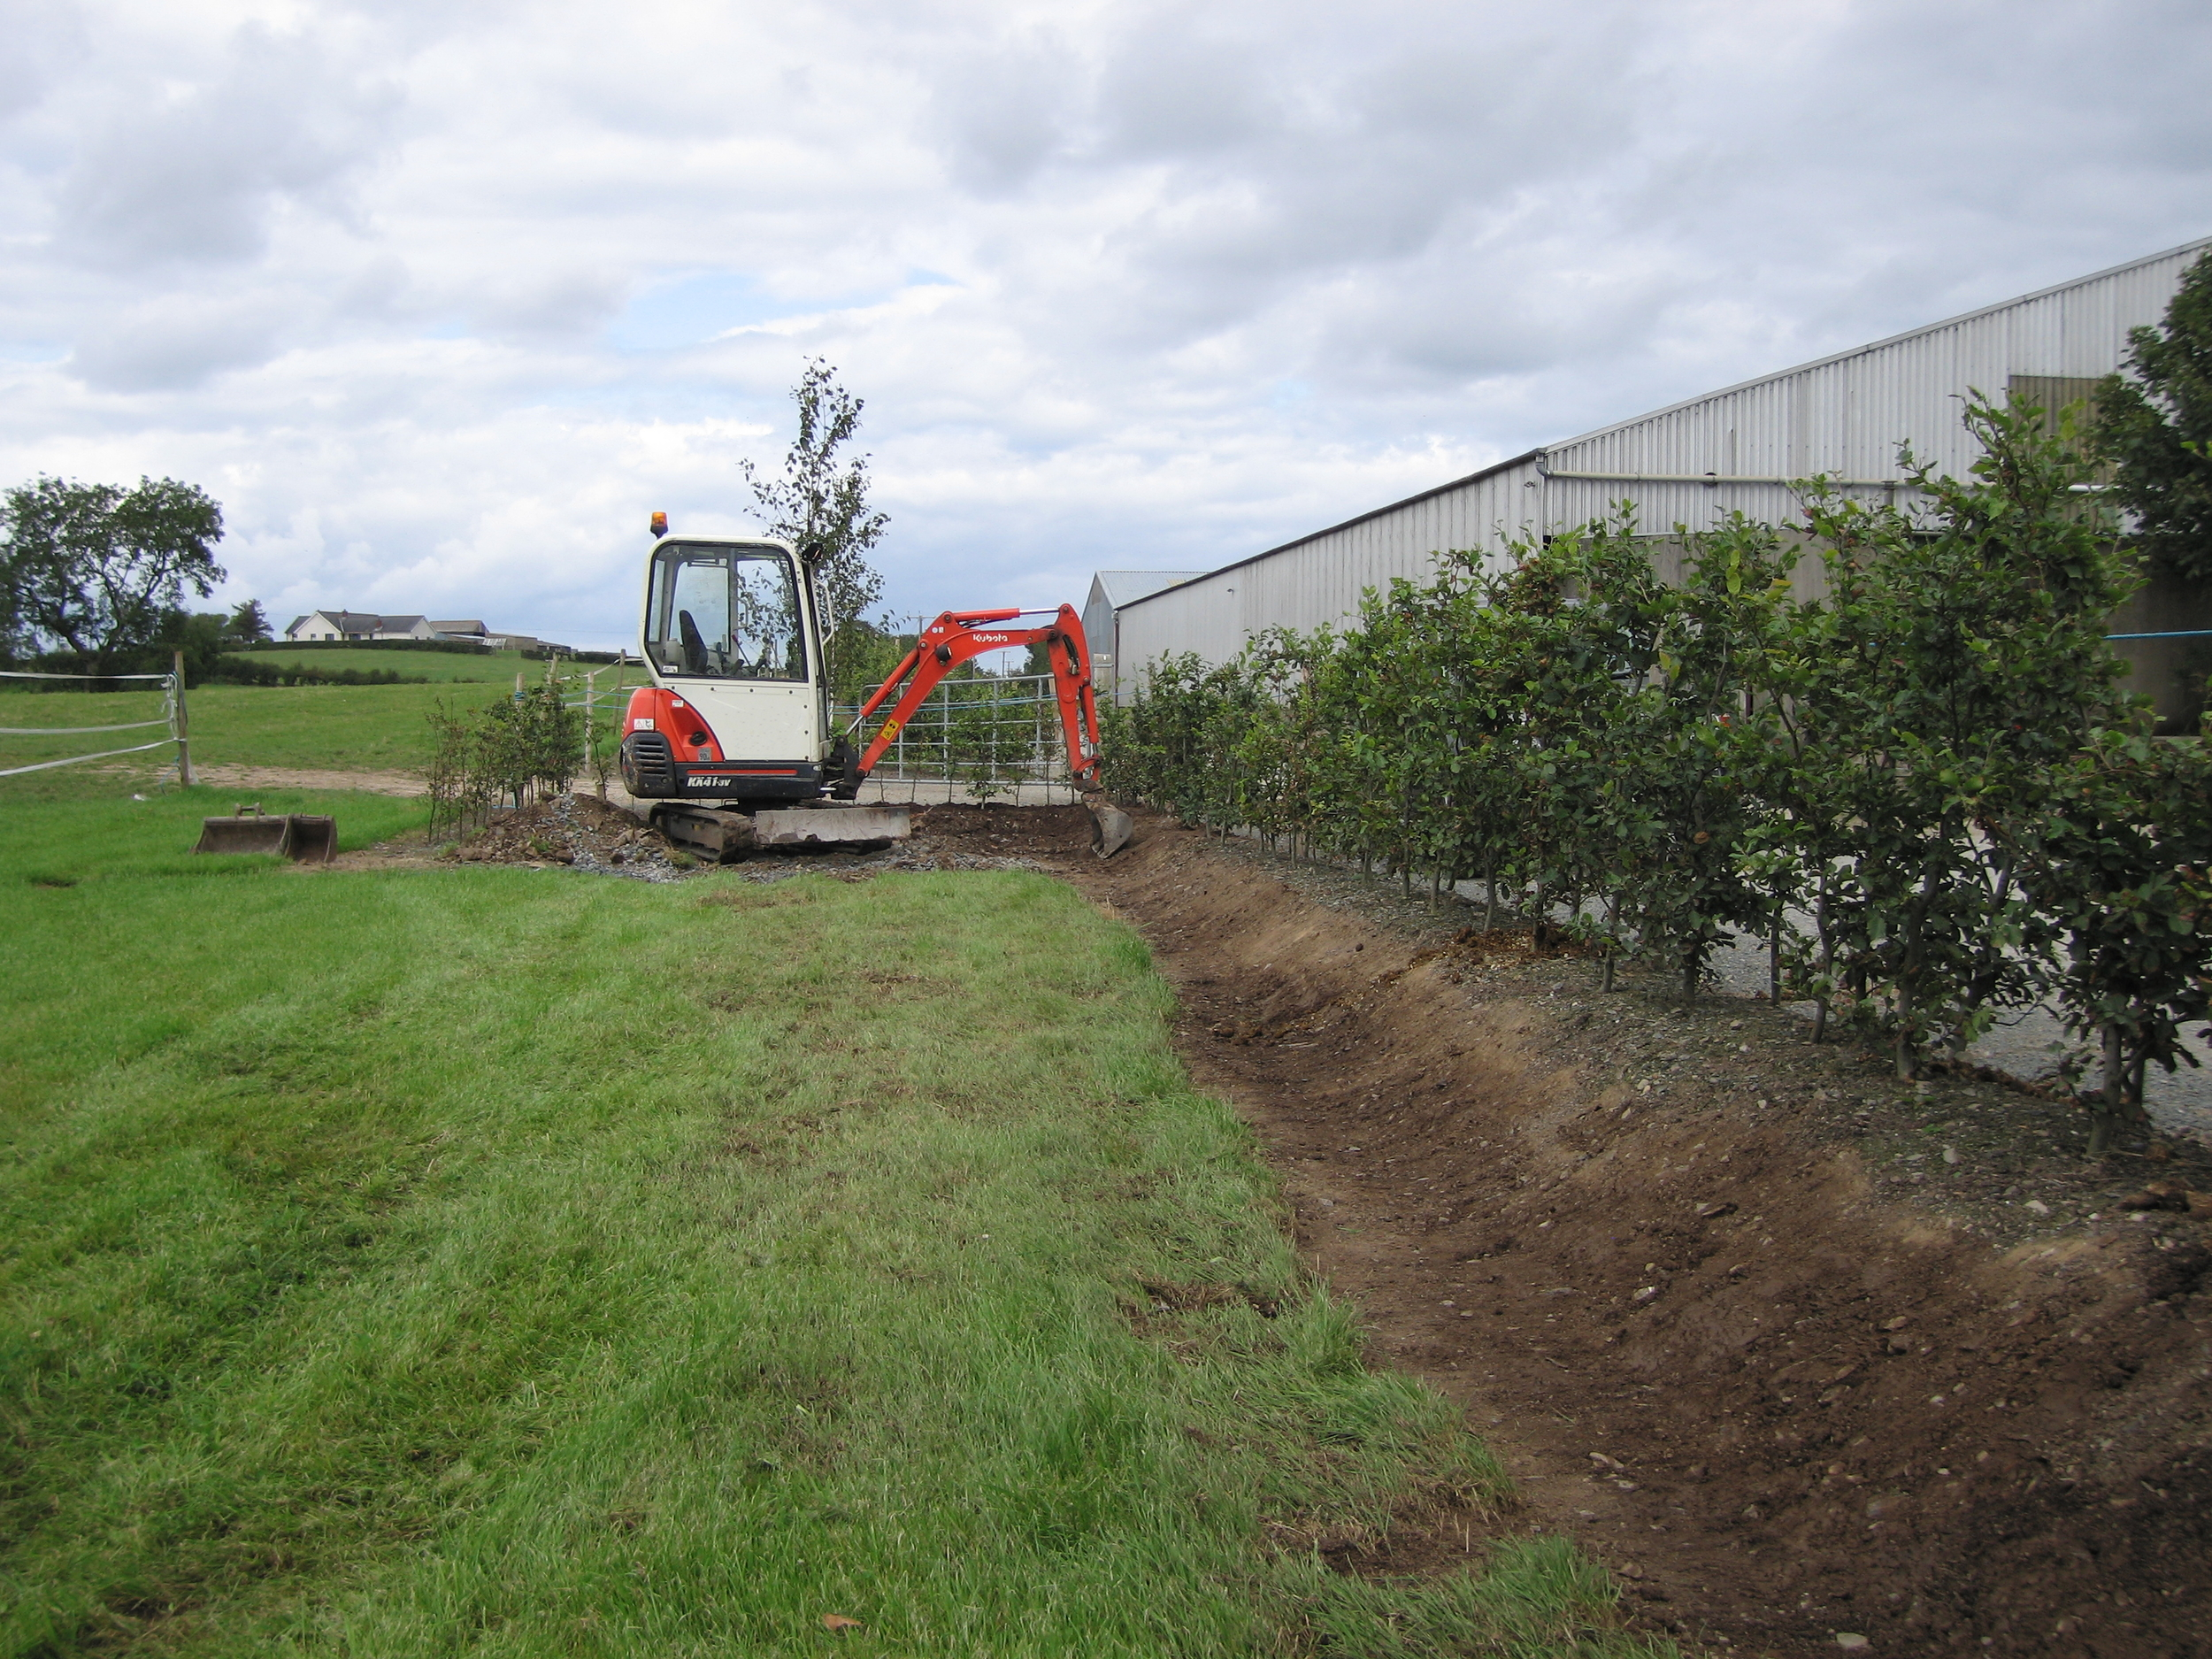 equestrian landscaping using beech hedging and bank